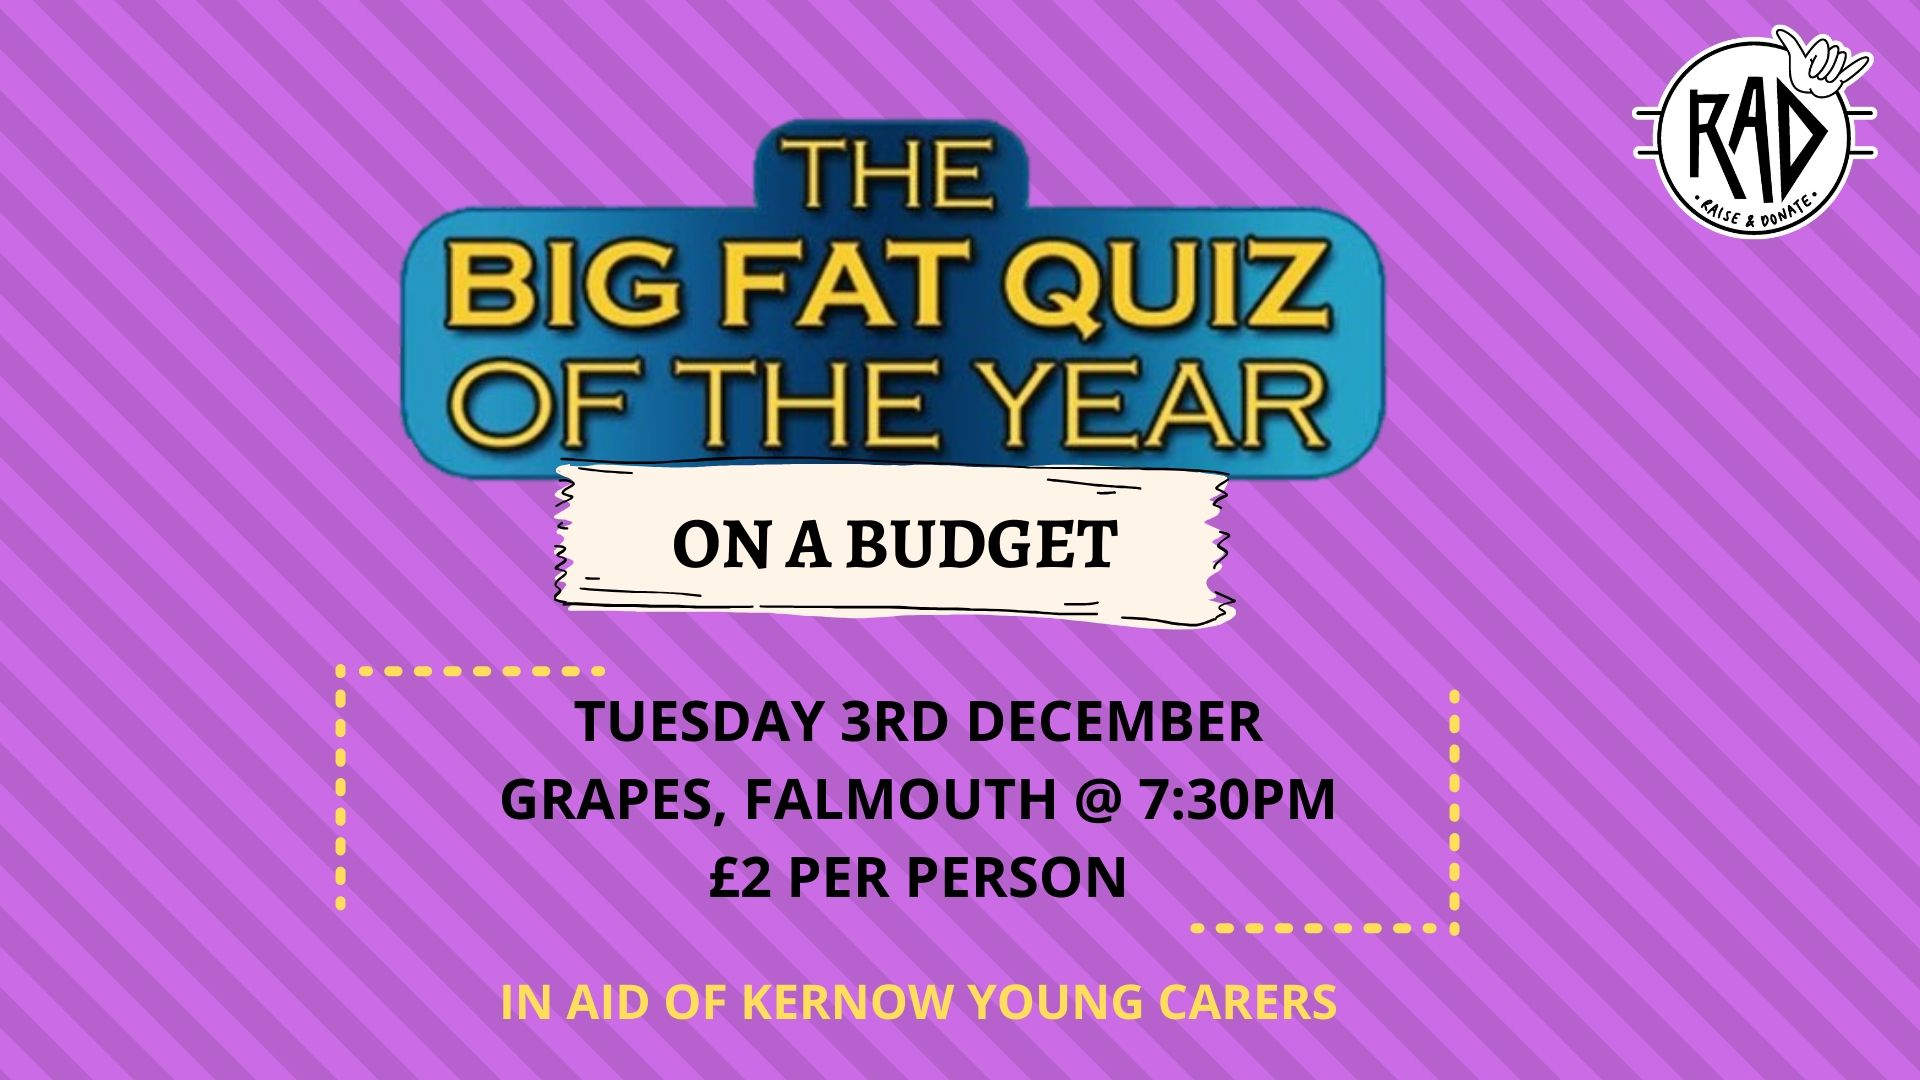 The Big Fat Quiz Show of the Year (On a Budget). Tuesday 3rd December, Grapes, Falmouth at 7:30PM. £2 per person. In aid of Kernow Young Carers.